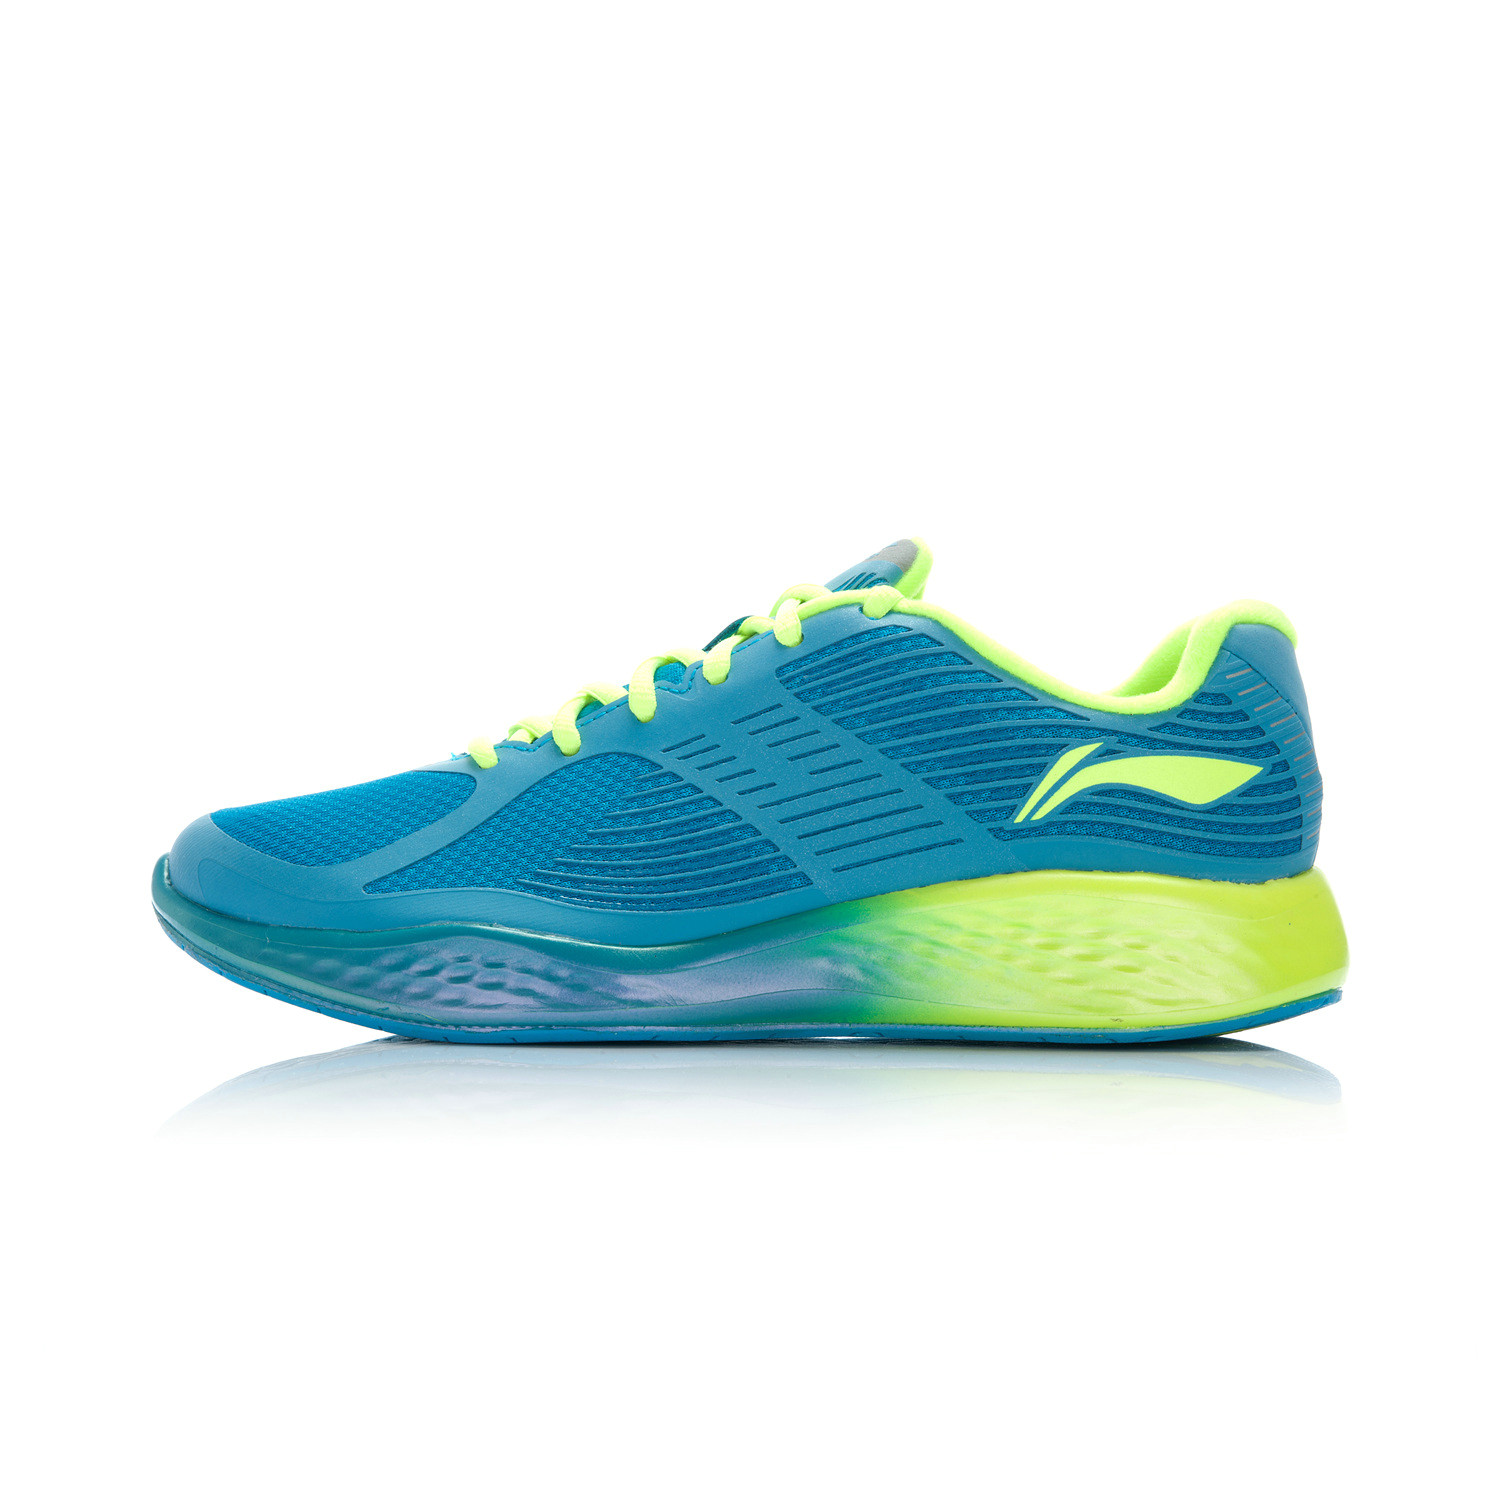 Lining yun li ning shoes official authentic new men's running shoes men's casual wear and breathable cushioning sports shoes